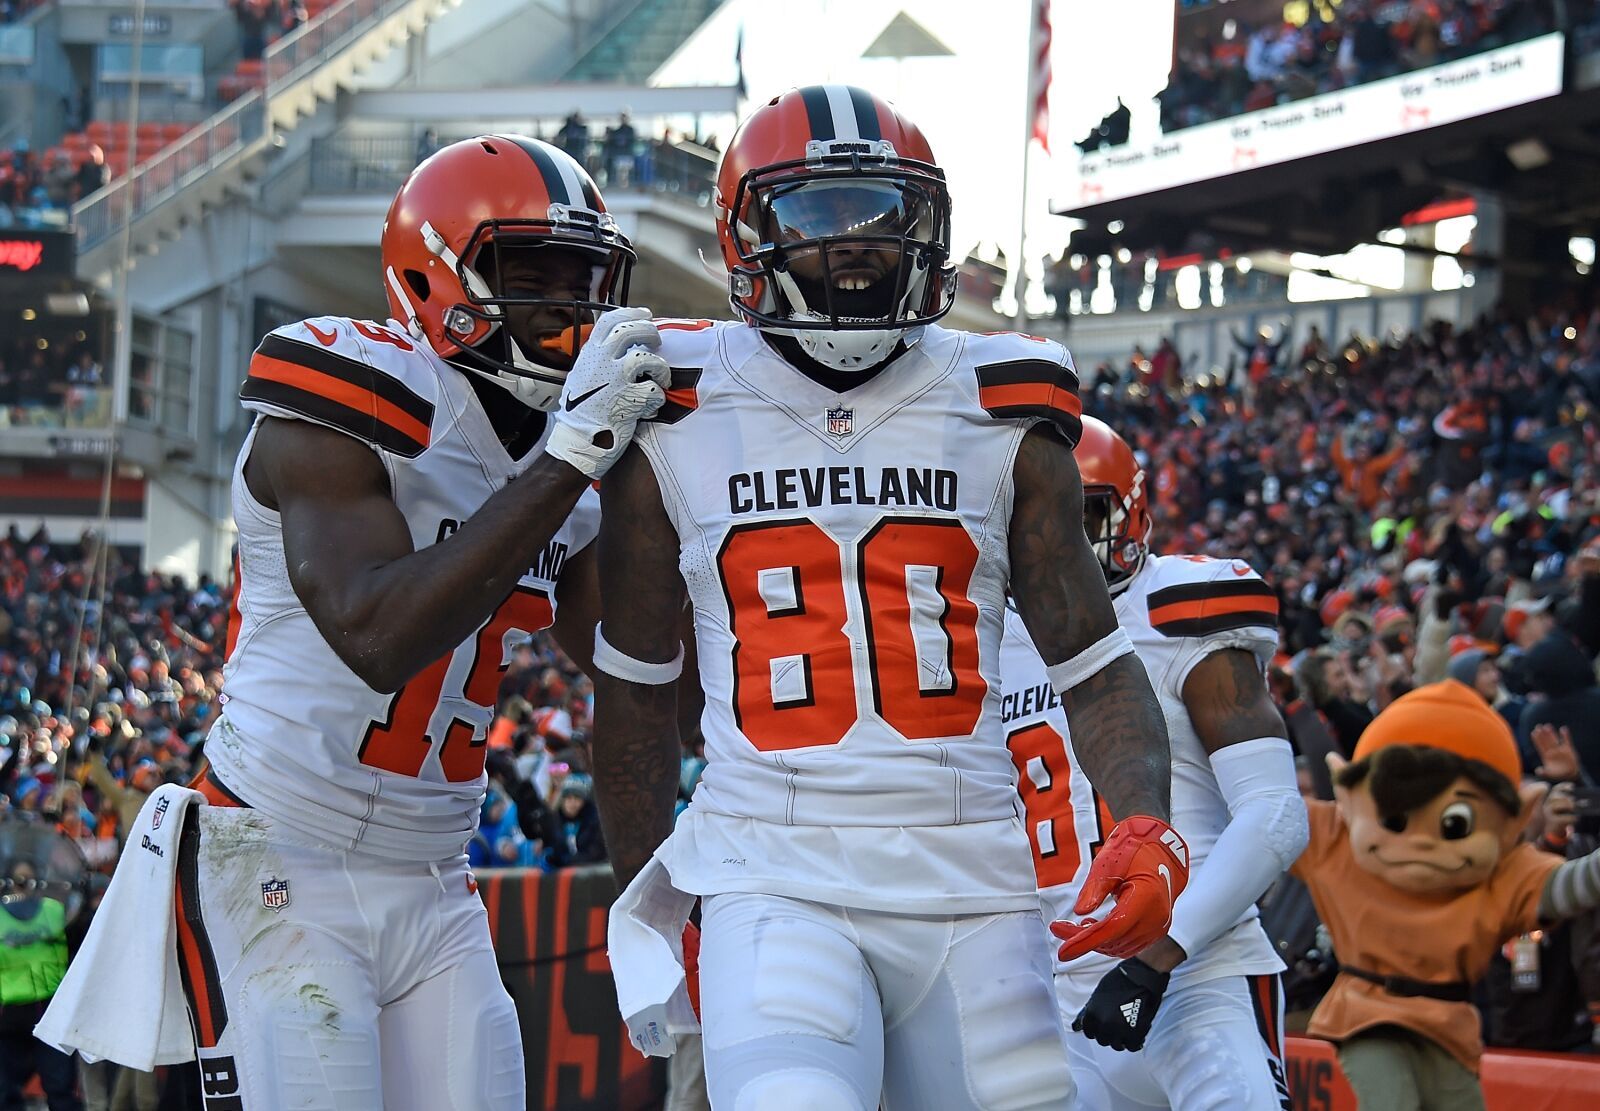 Cleveland Browns fans can thank Jarvis Landry for OBJ